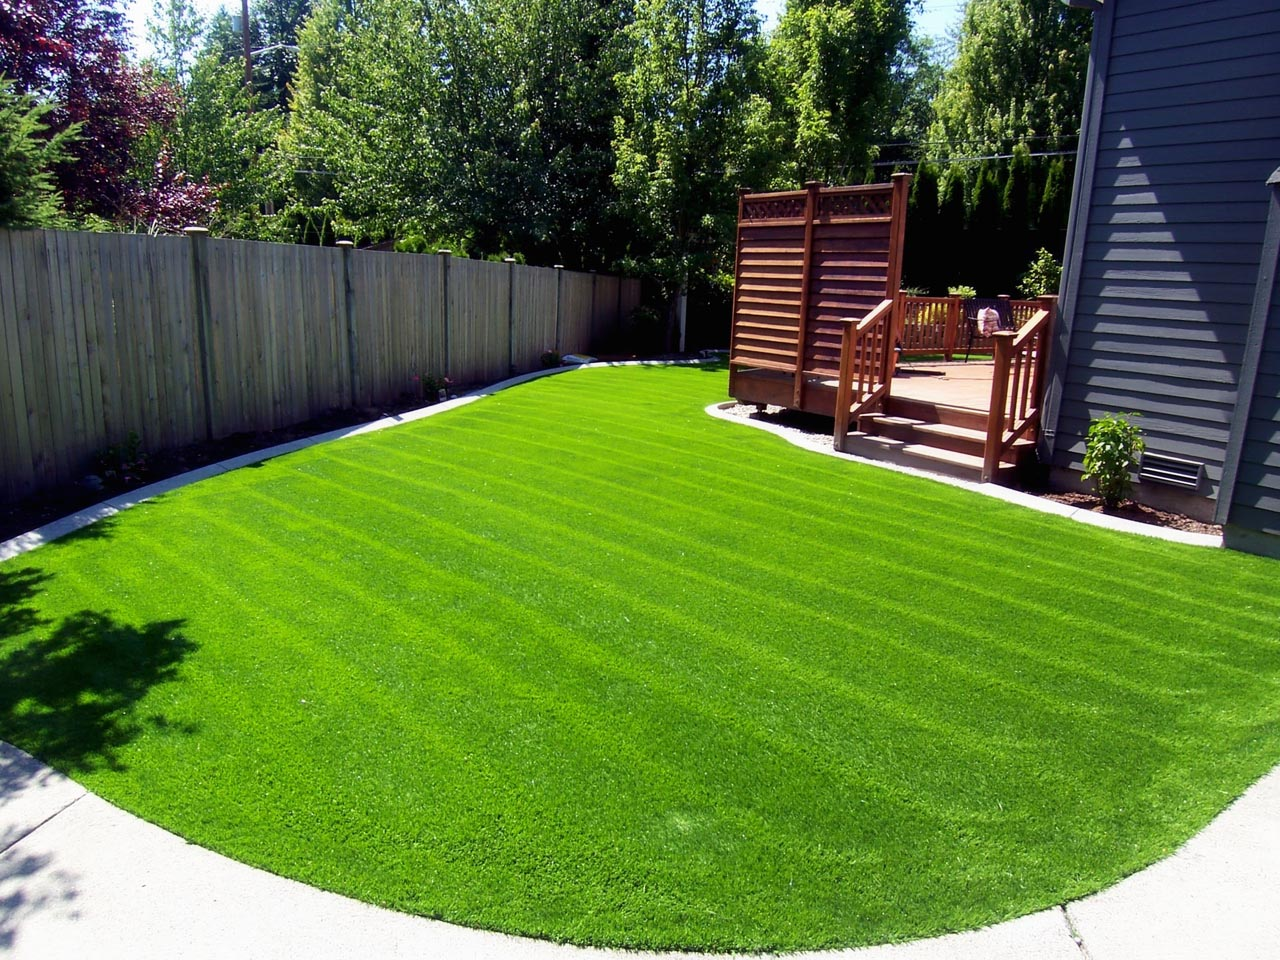 Artificial Turf Market 2019 Precise Outlook – Ten Cate, Shaw Sports Turf, FieldTurf ( Tarkett), CoCreation Grass